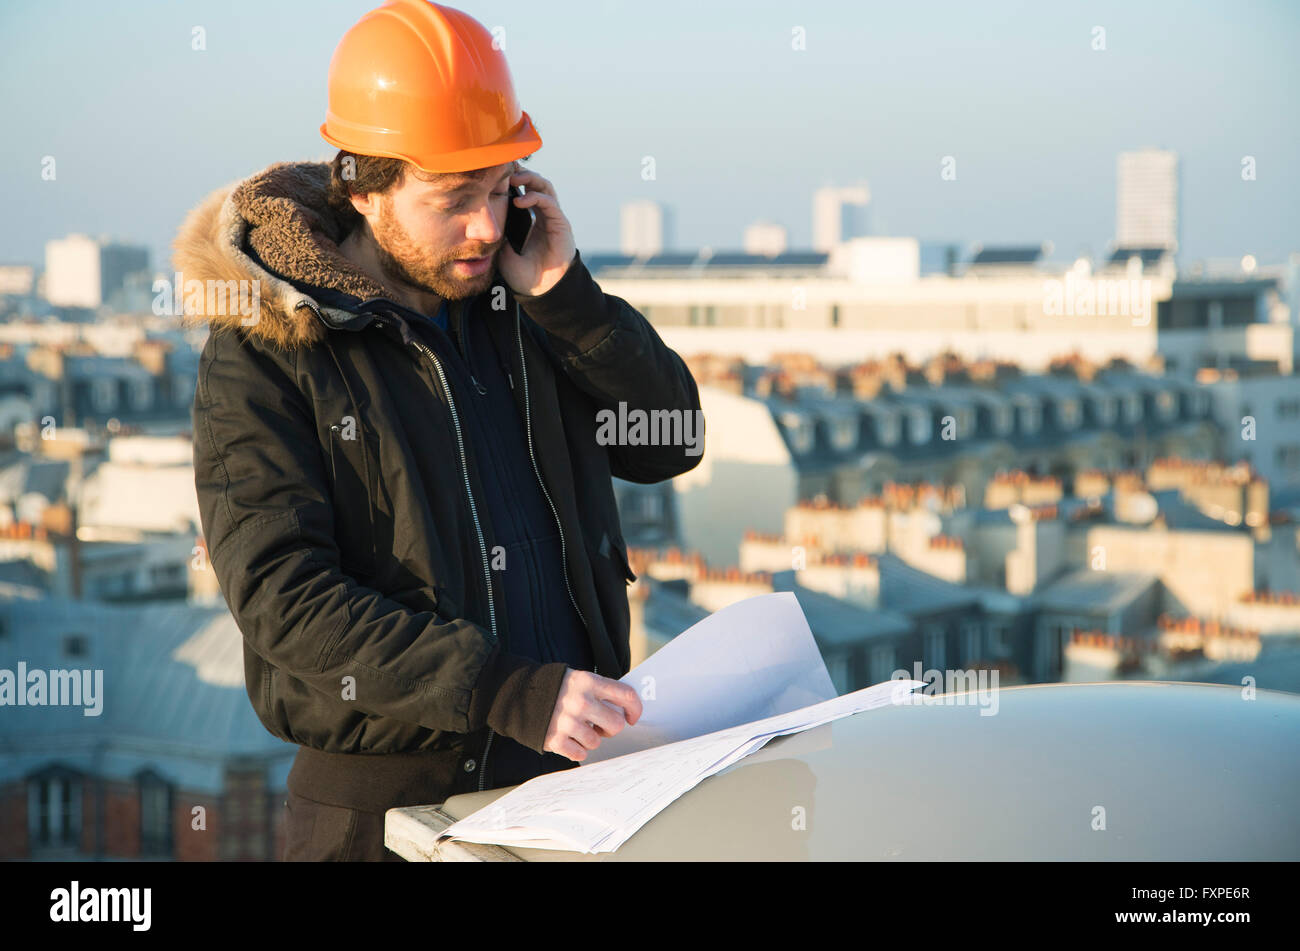 Construction supervisor studying blueprints and talking on cell phone - Stock Image